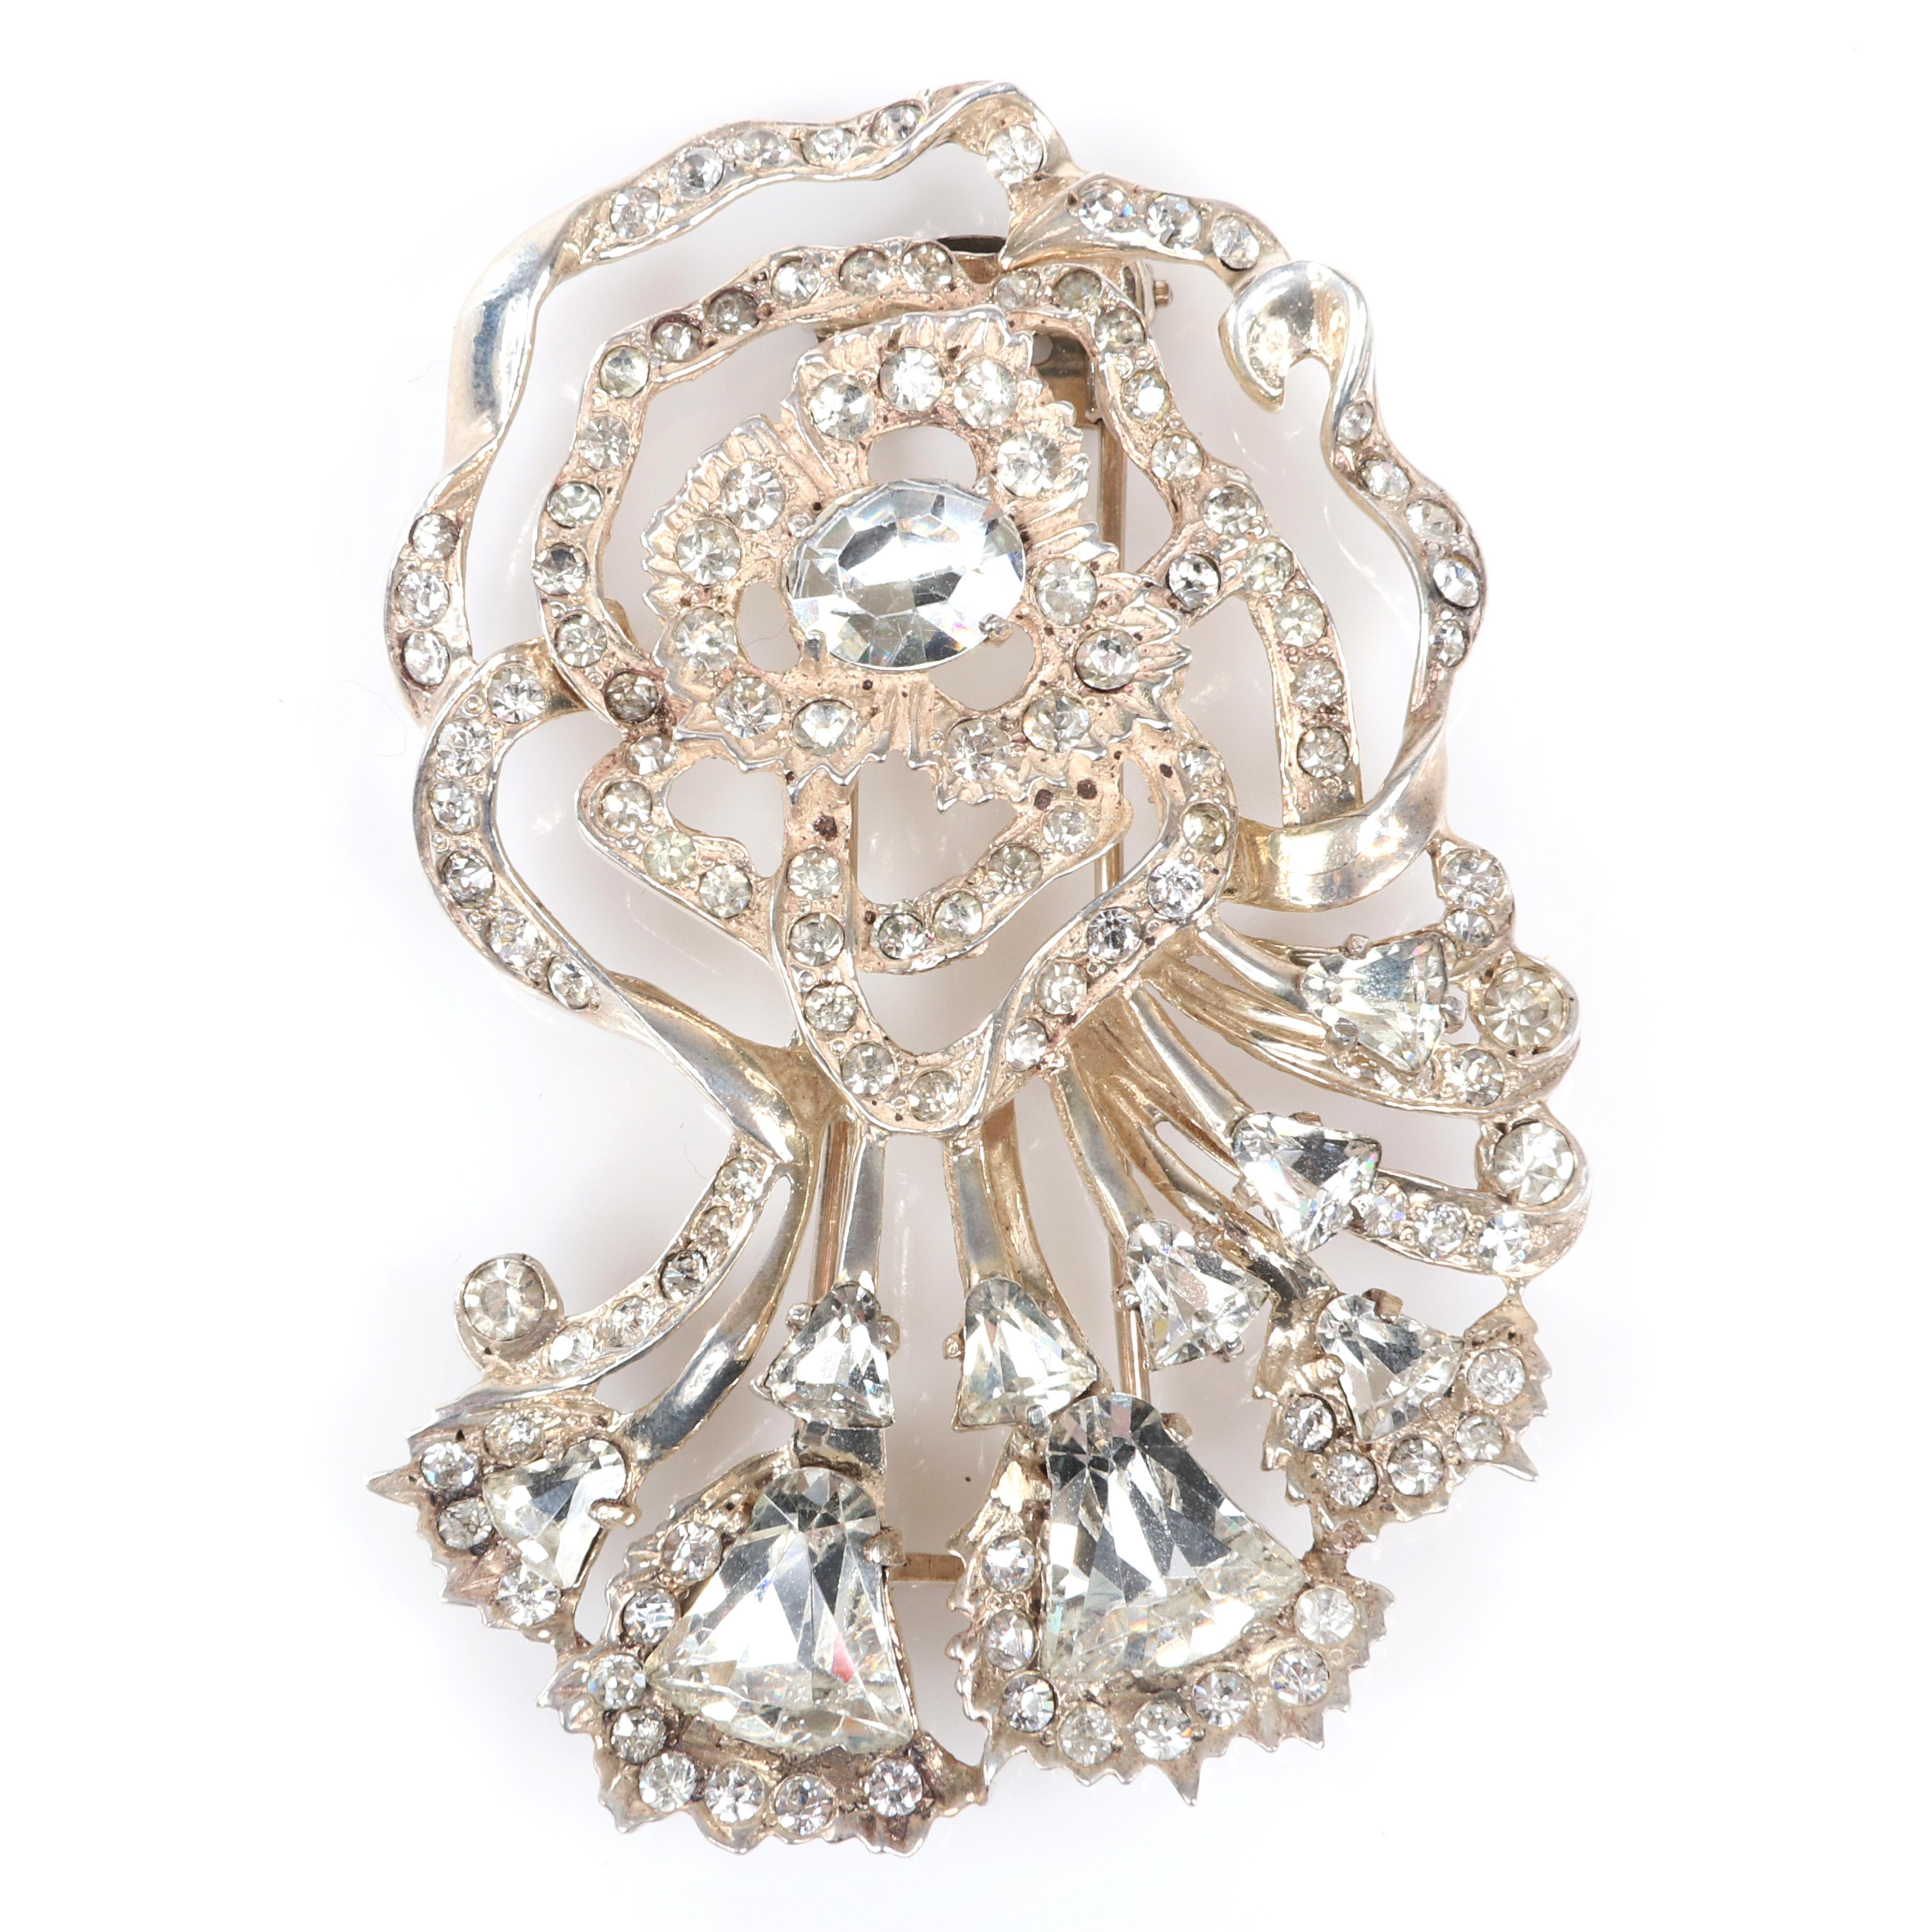 "Eisenberg Original sterling vermeil openwork rose flower fur clip with round and triangular rhinestones surrounded by pave ribbons, c. mid-1940s. 3"" x 2 1/2"""